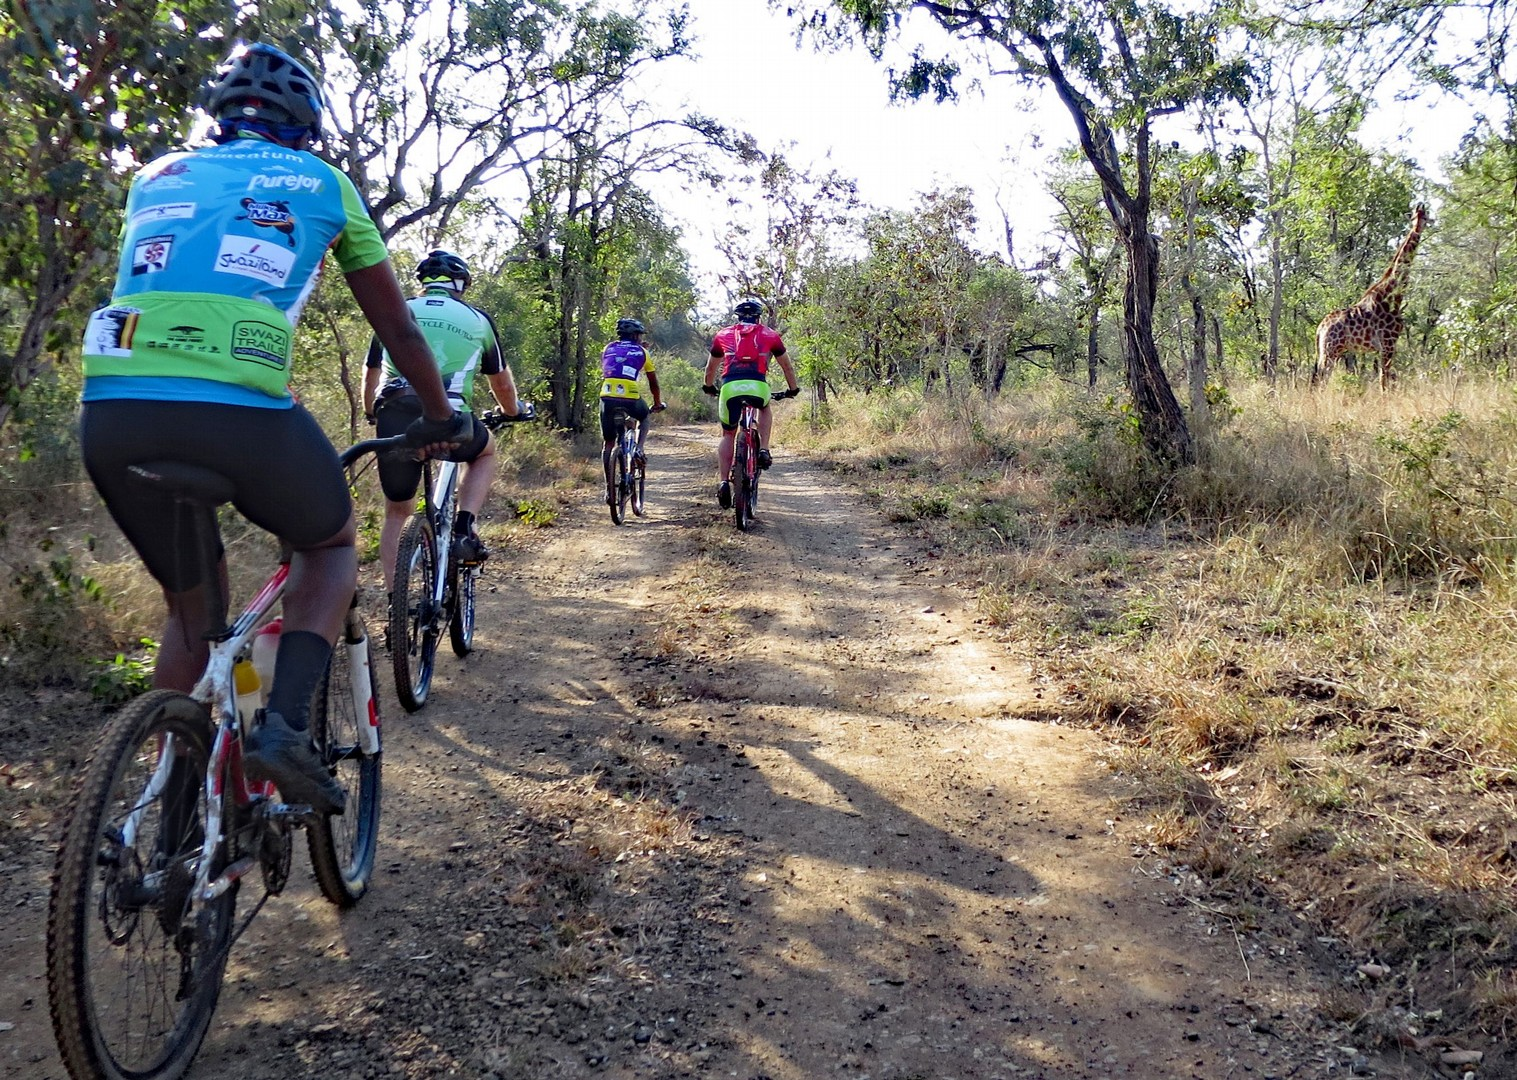 south-africa-guided-mountain-bike-holiday-africa-swaziland-singletrack-and-sundowners.jpg - Swaziland (Eswatini) - Singletrack and Sundowners - Mountain Biking